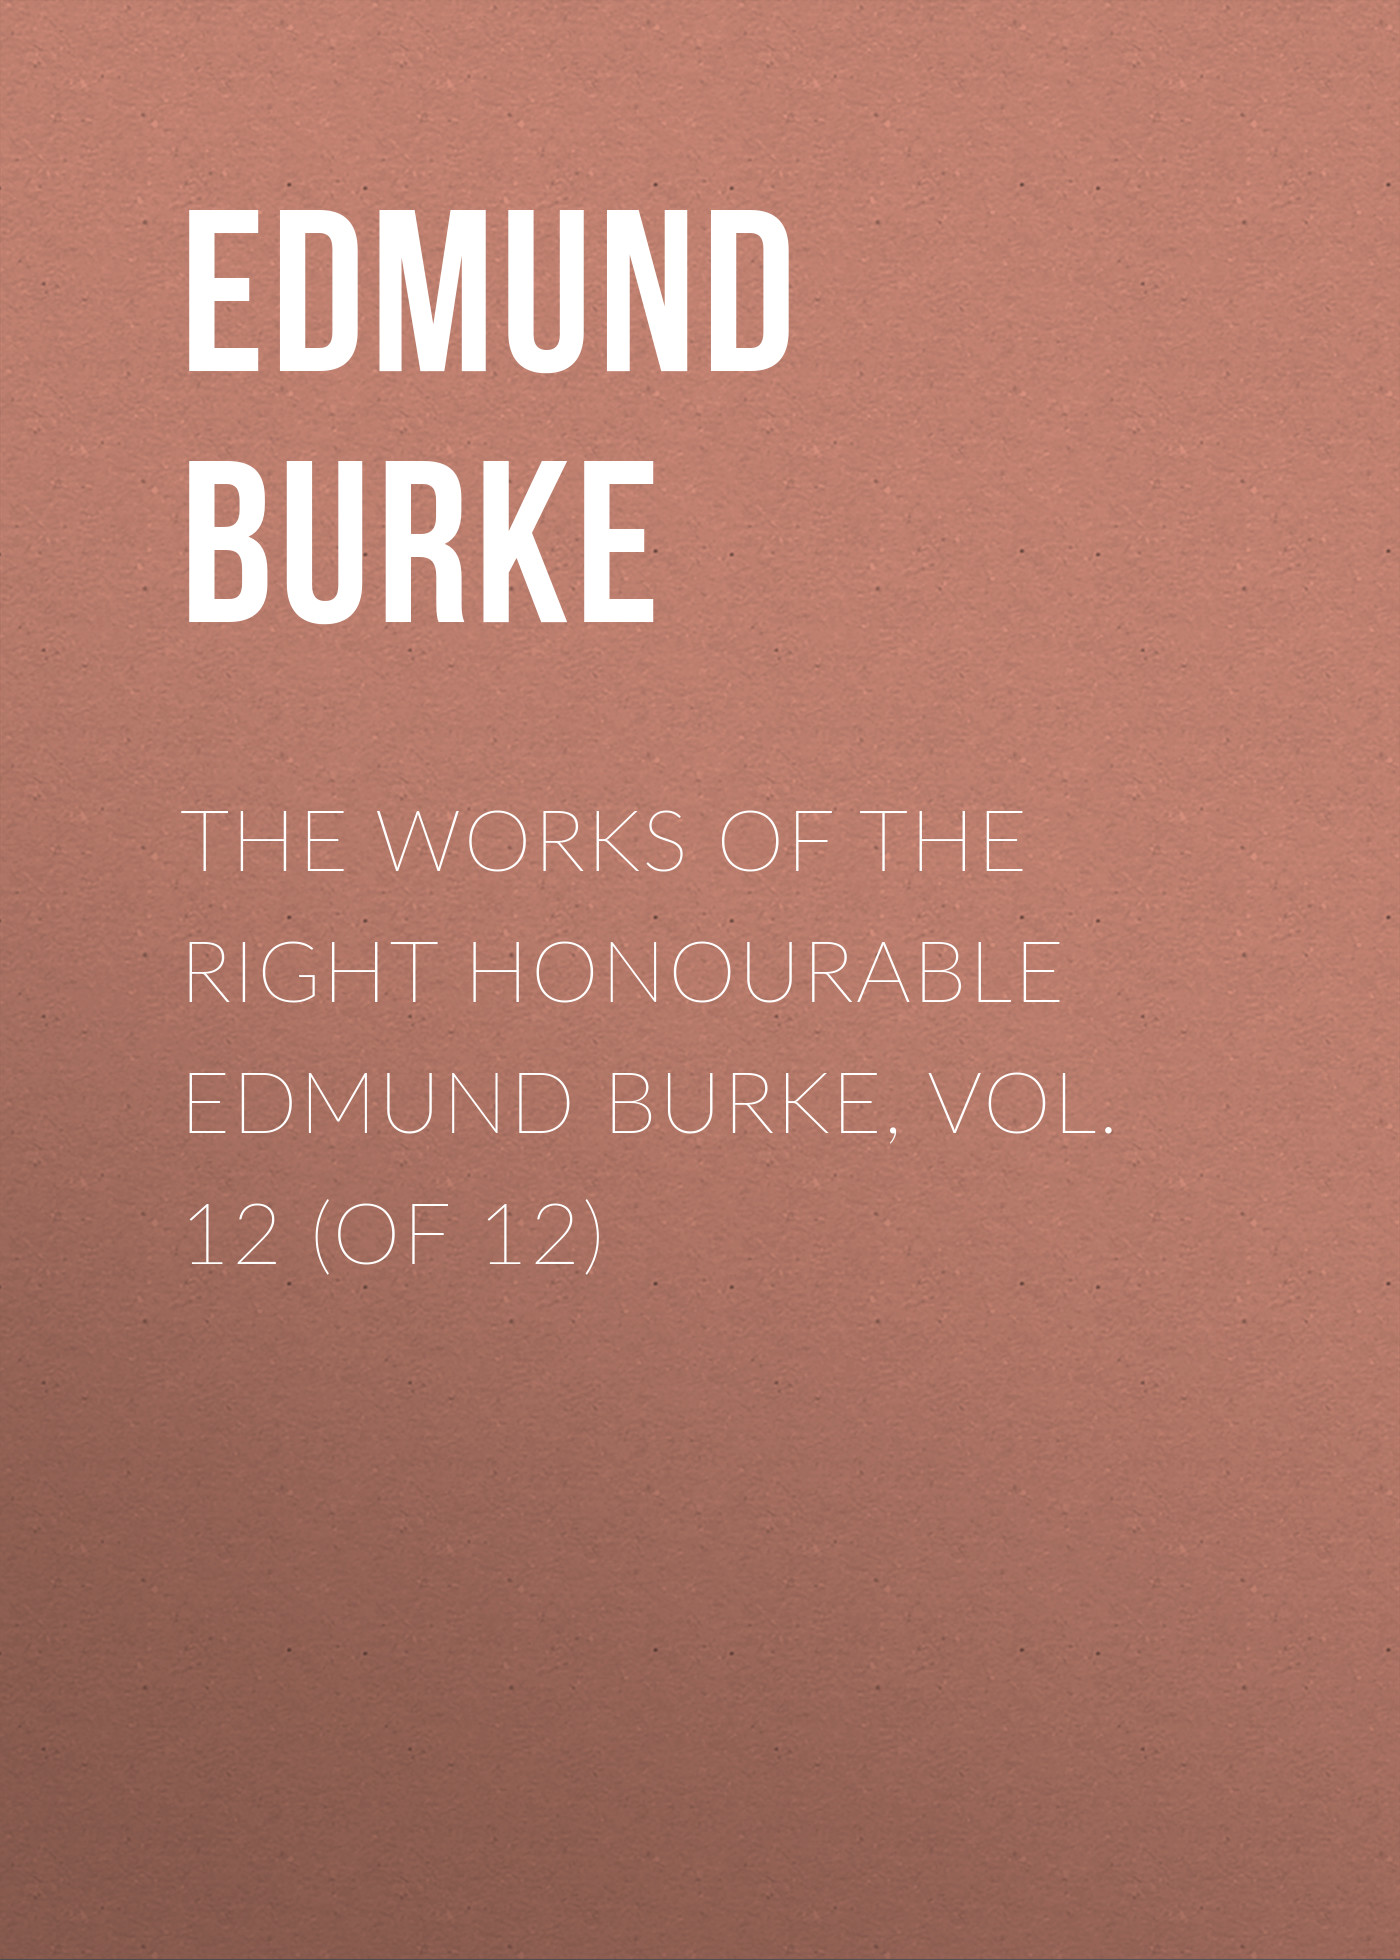 Edmund Burke The Works of the Right Honourable Edmund Burke, Vol. 12 (of 12) цена